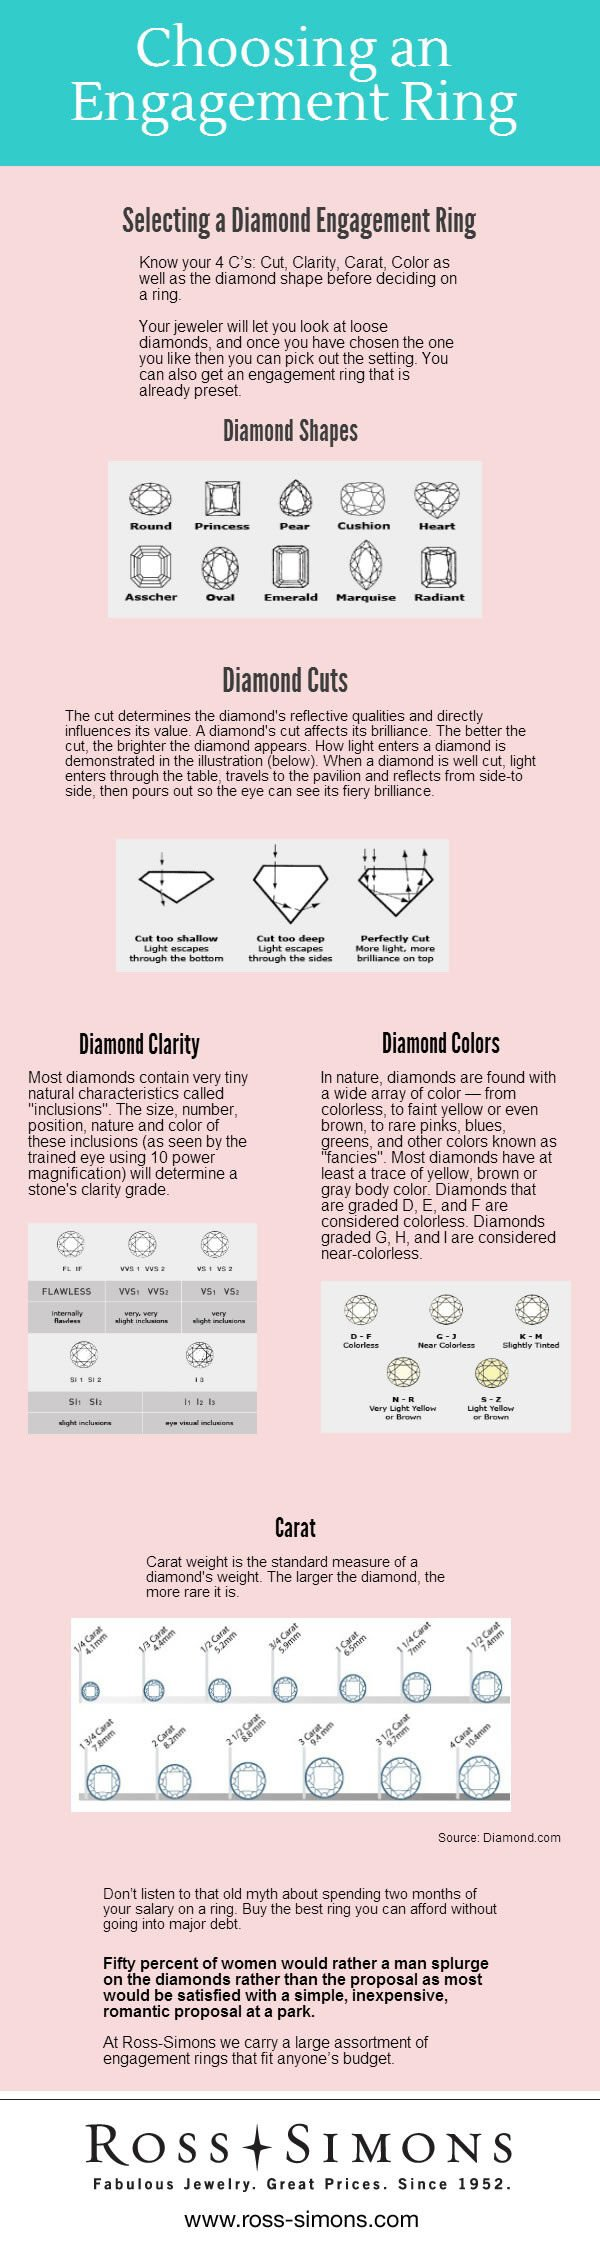 Choosing a Diamond Engagement Ring Infographic. Text for this infographic can be found below under 'Infographic Full-Text' headline.